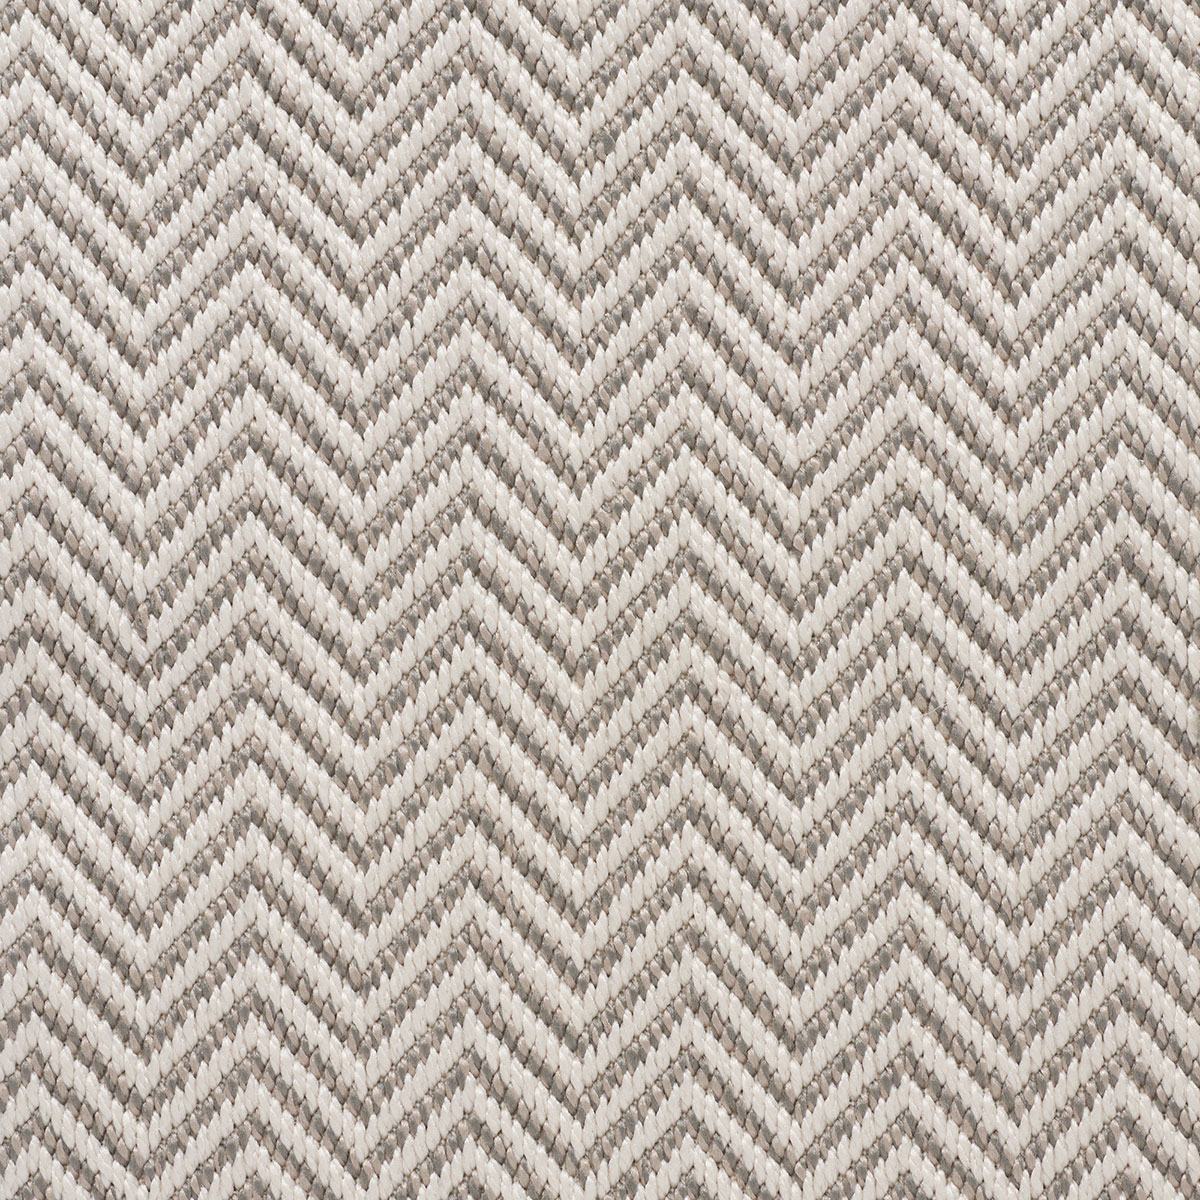 herringcord_wool_broadloom_patterson-flynn-martin_pfm